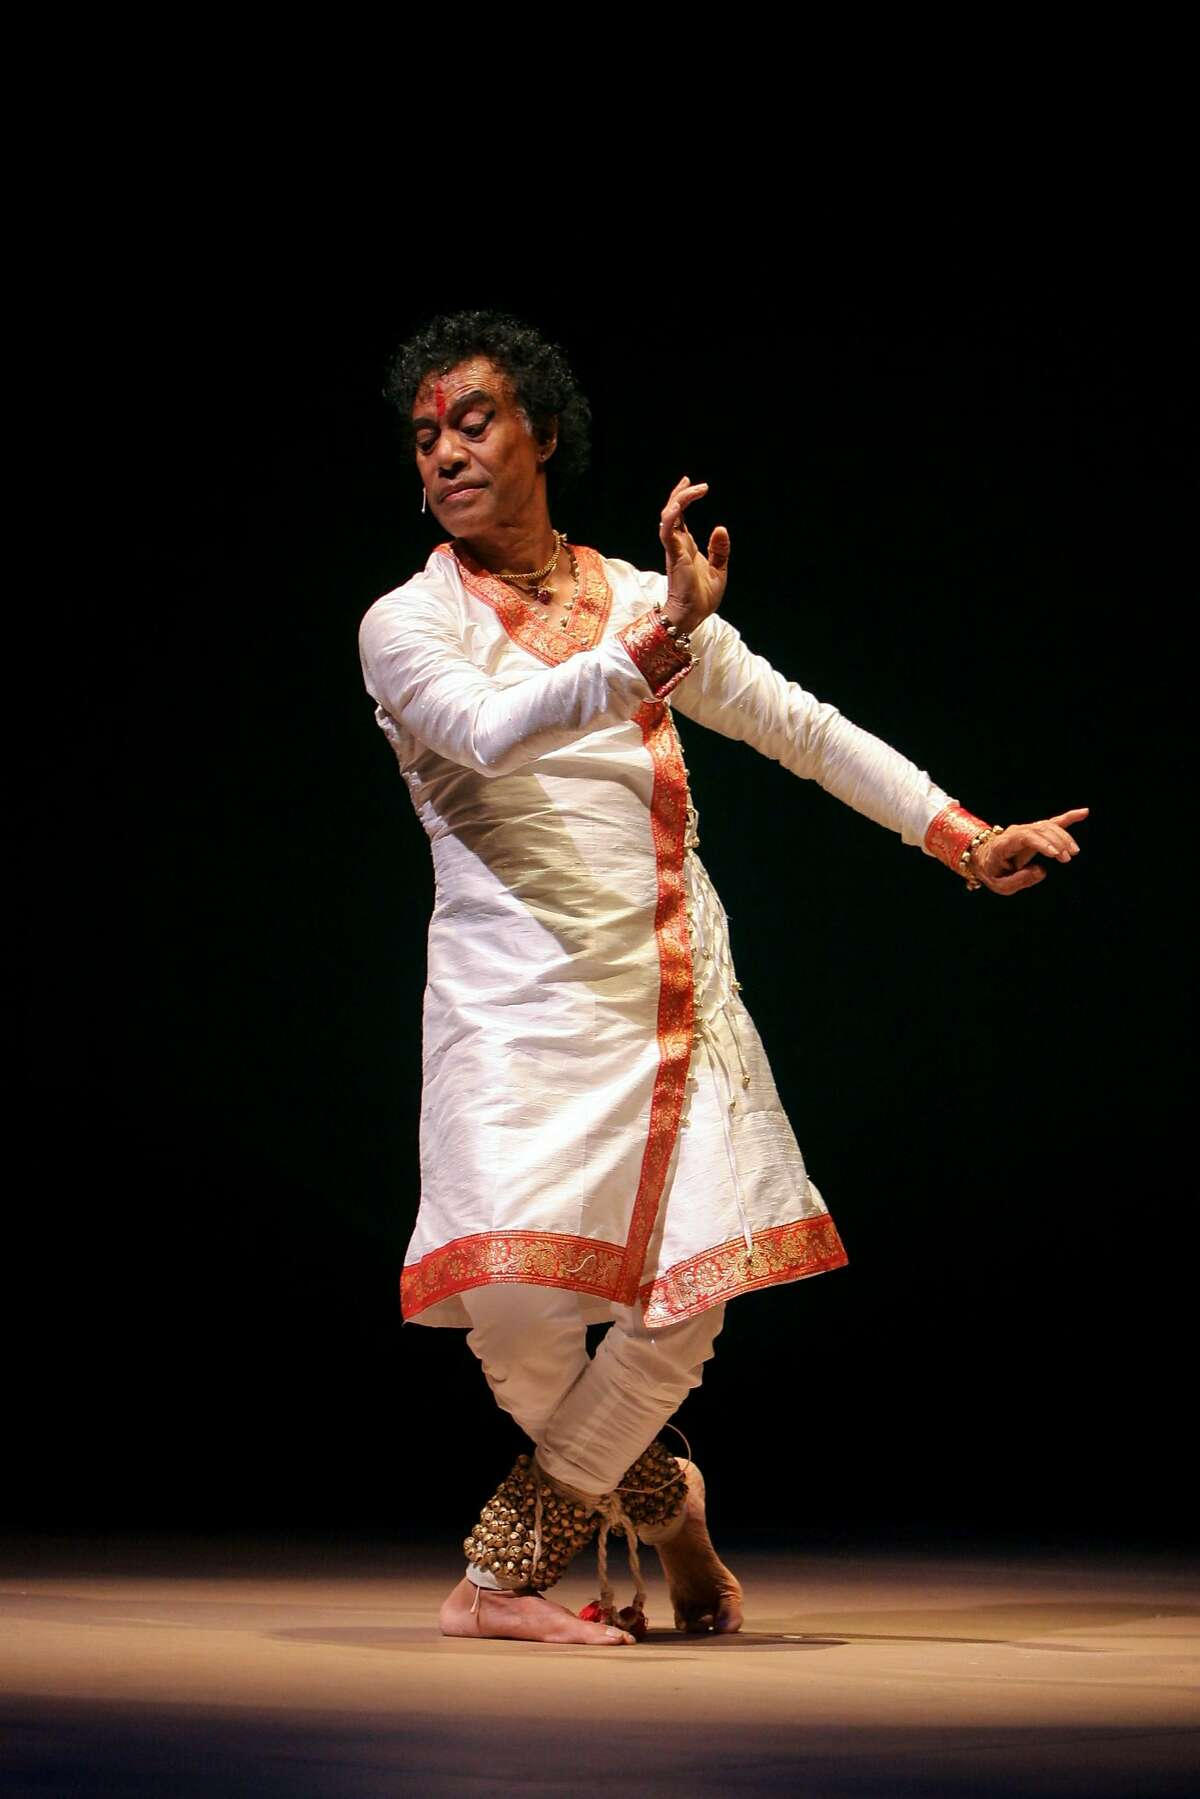 """Pandit Chitresh Das, master of the classical North Indian dance called kathak, performs with Spanish flamenco dancer Antonio Hidalgo Paz next month at the Palace of Fine Arts Theatre in a collaborative piece called """"Yatra: Journey from India to Spain."""" Photo courtesy Chitresh Das Dance Company."""